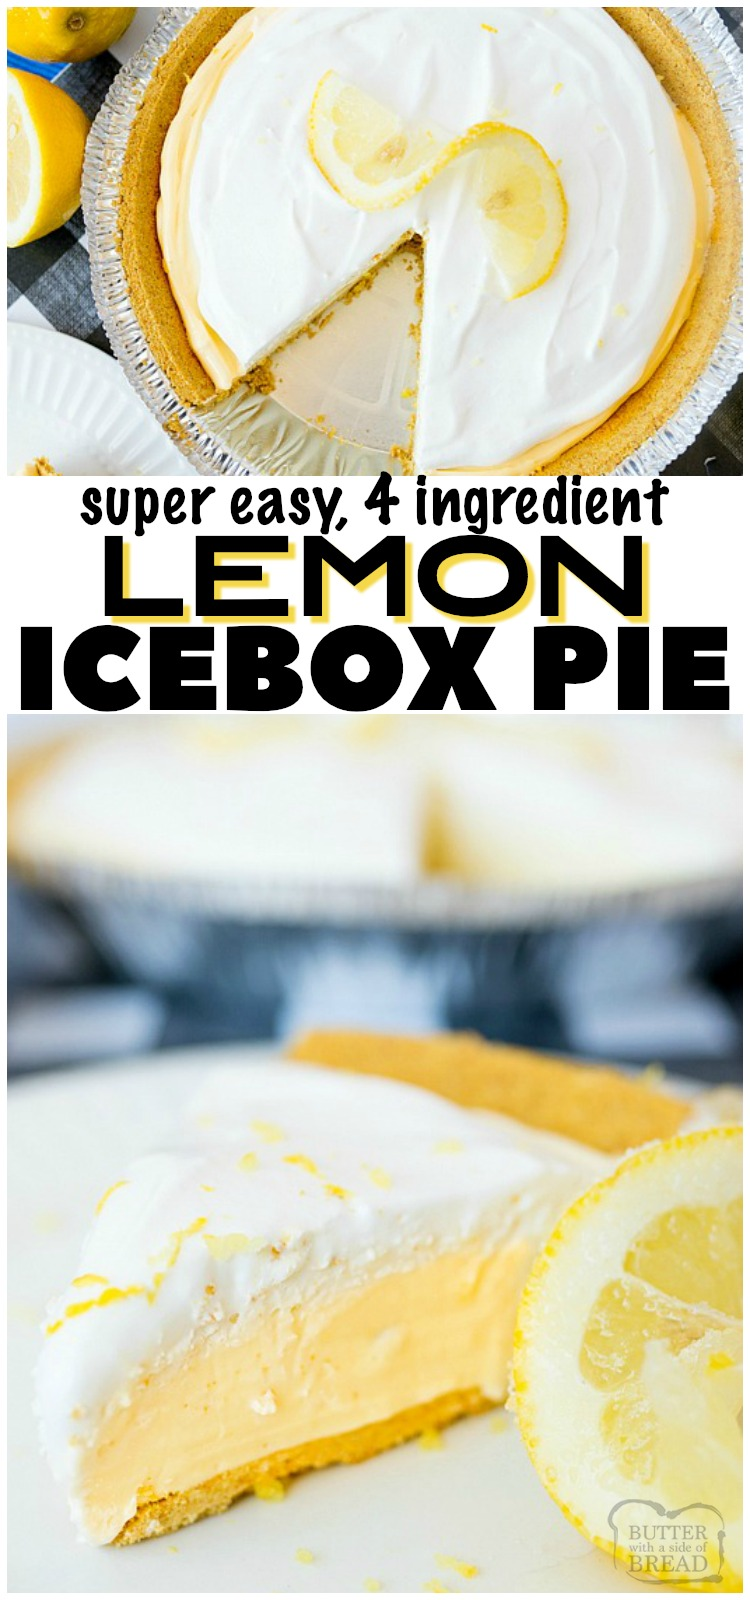 Lemon Icebox Pie is a quick an easy frozen lemon dessert. This pie has a classic tart lemonade flavor & is made from only FOUR simple ingredients! Simple to make and everyone loves this sweet, creamy lemon pie. #pie #lemon #icebox #dessert #easy #recipe #summer #spring #food from BUTTER WITH A SIDE OF BREAD